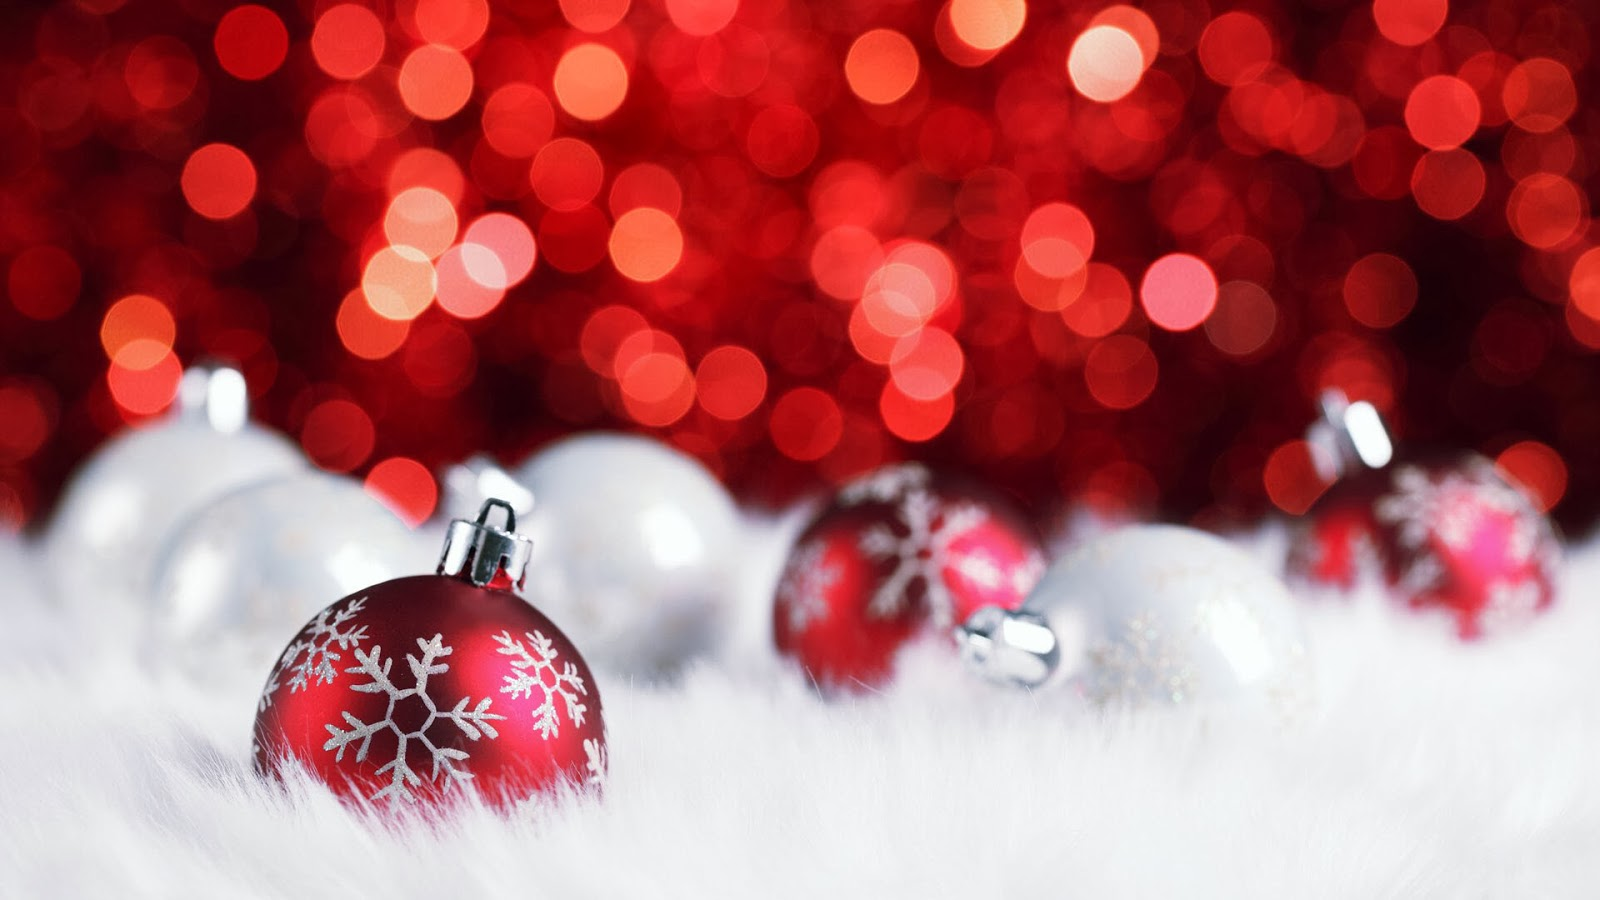 Christmas Scenes Wallpapers Backgrounds